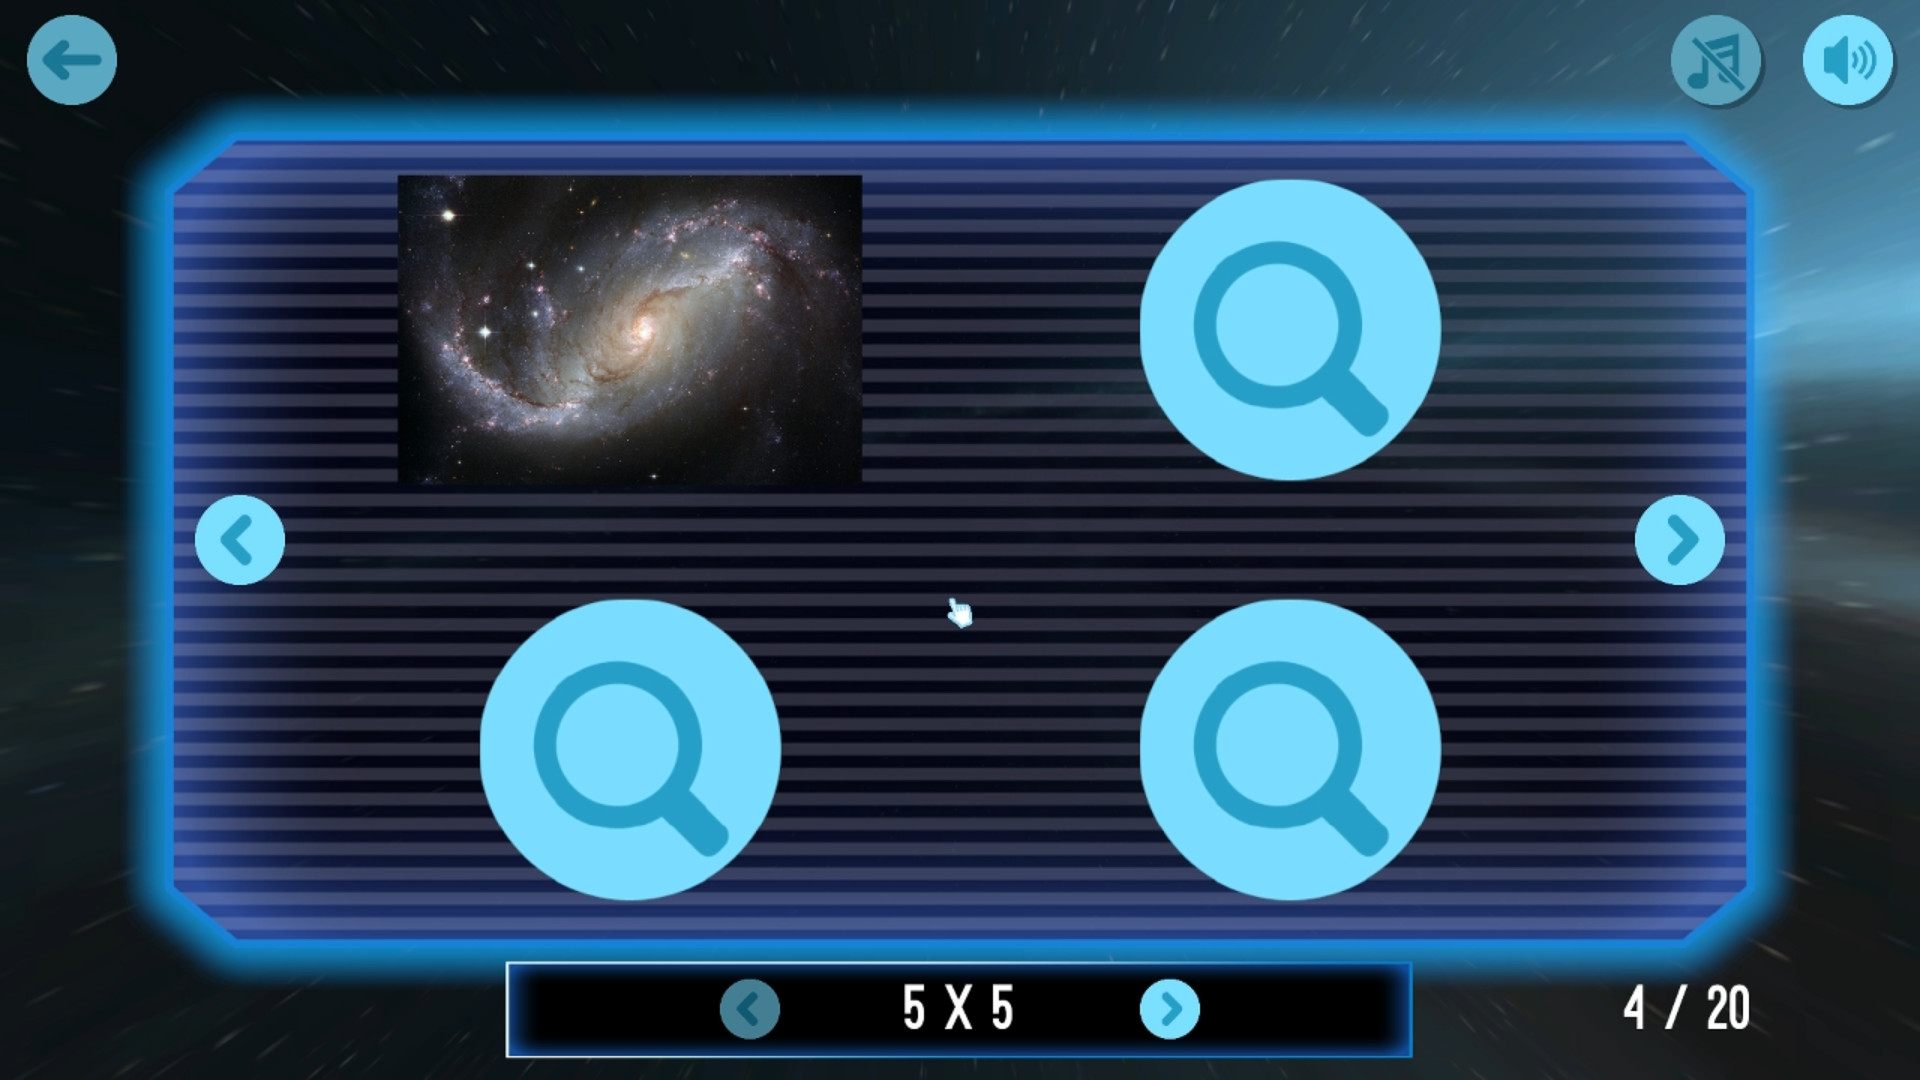 Puzzle 101: Edge of Galaxy 宇宙边际 Free Download